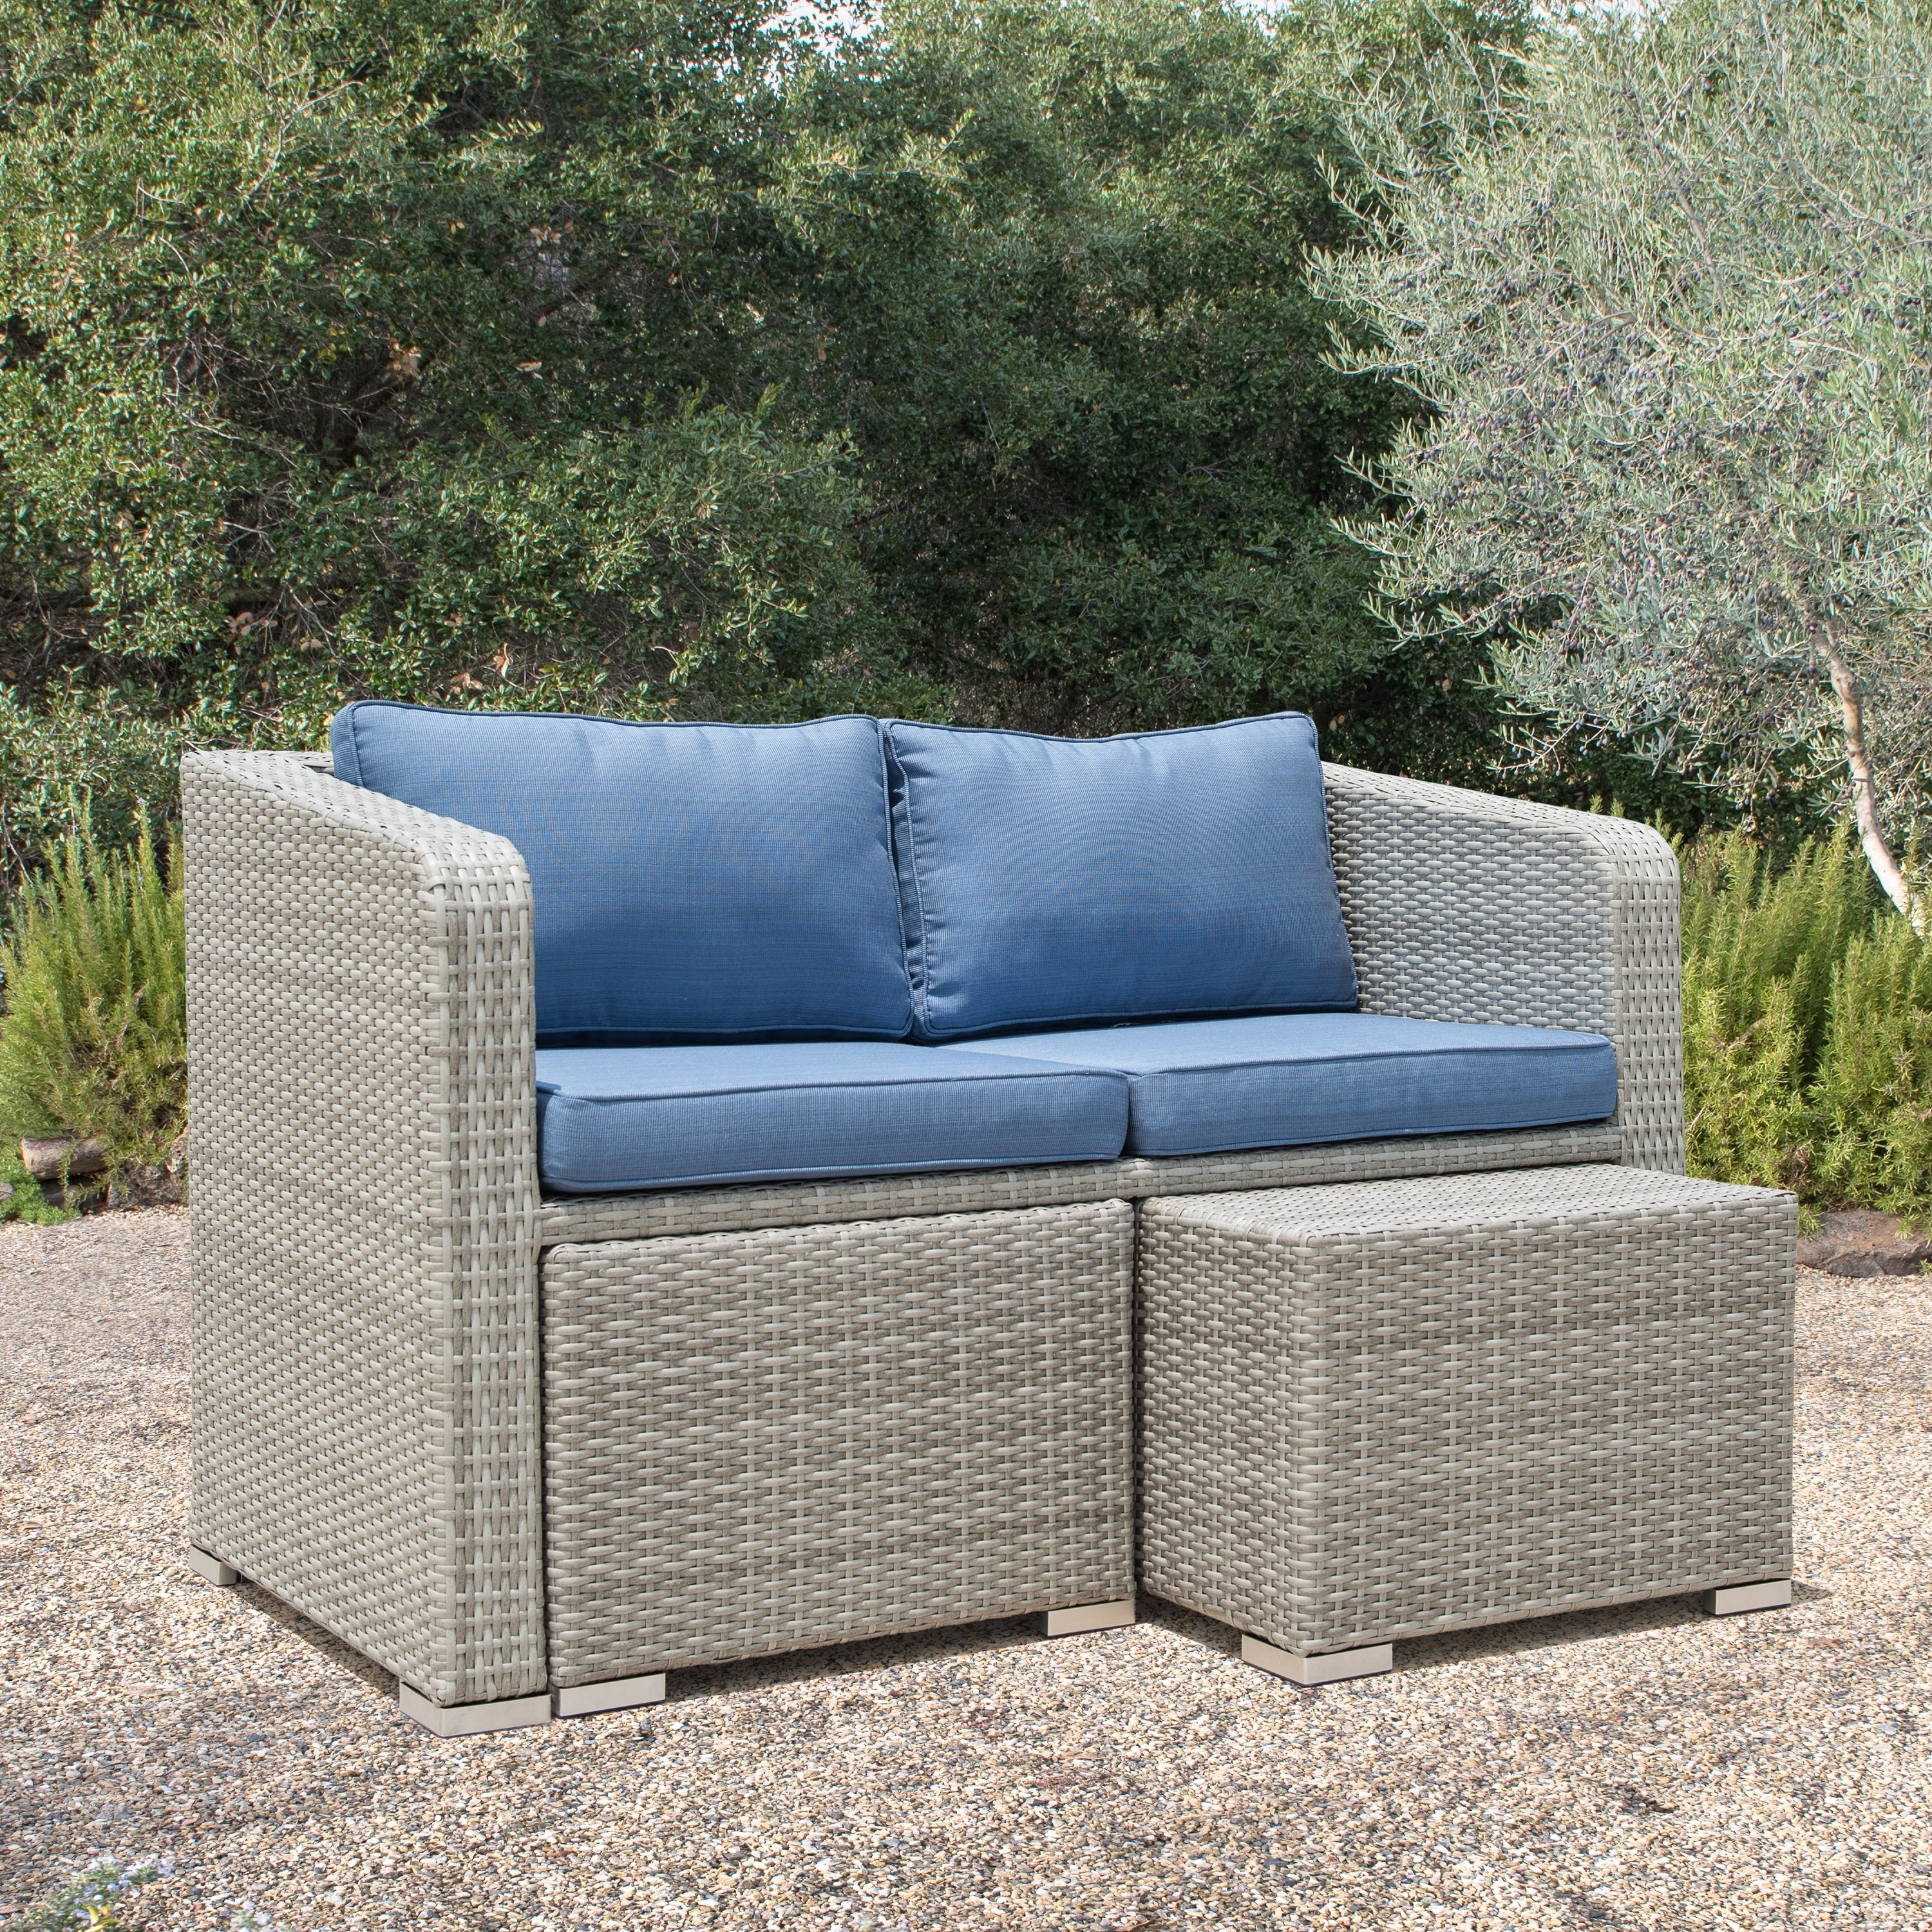 Shop Corvus Tino 4 Piece Grey Wicker Outdoor Chat Set With Blue Cushions    On Sale   Free Shipping Today   Overstock.com   20961086